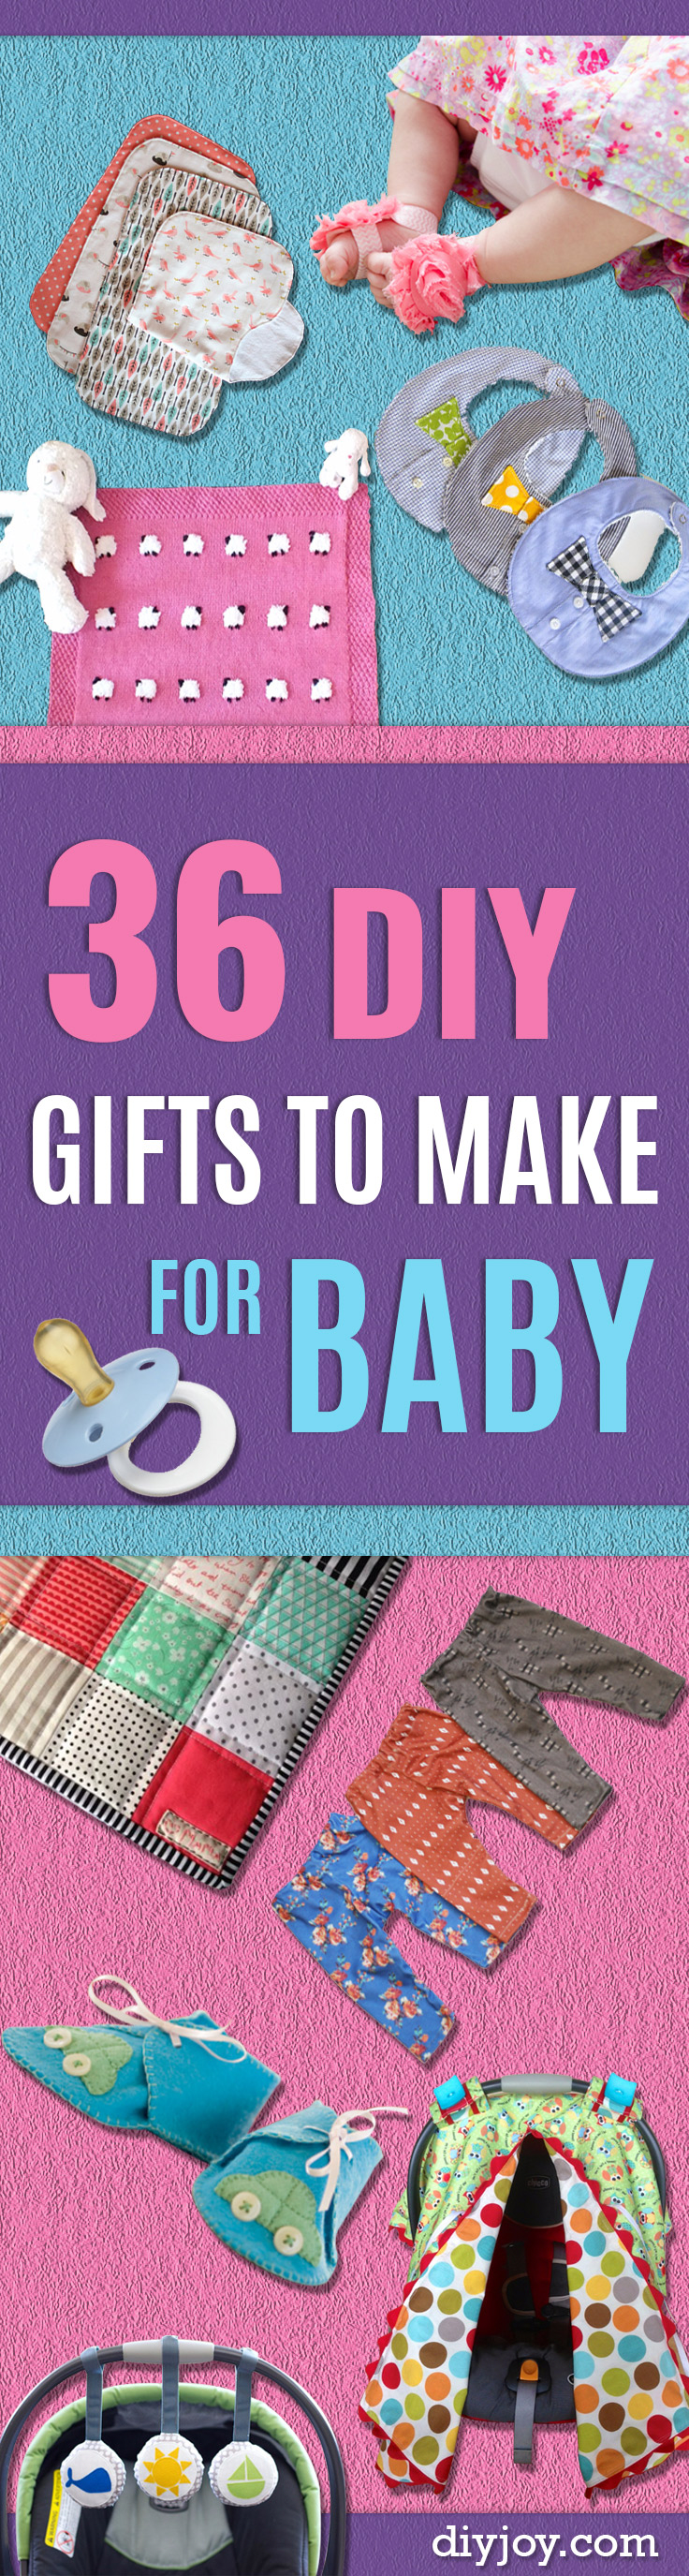 DIY Gifts for Babies - Best DIY Gift Ideas for Baby Boys and Girls - Creative Projects to Sew, Make and Sell, Gift Baskets, Diaper Cakes and Presents for Baby Showers and New Parents. Cool Christmas and Birthday Ideas